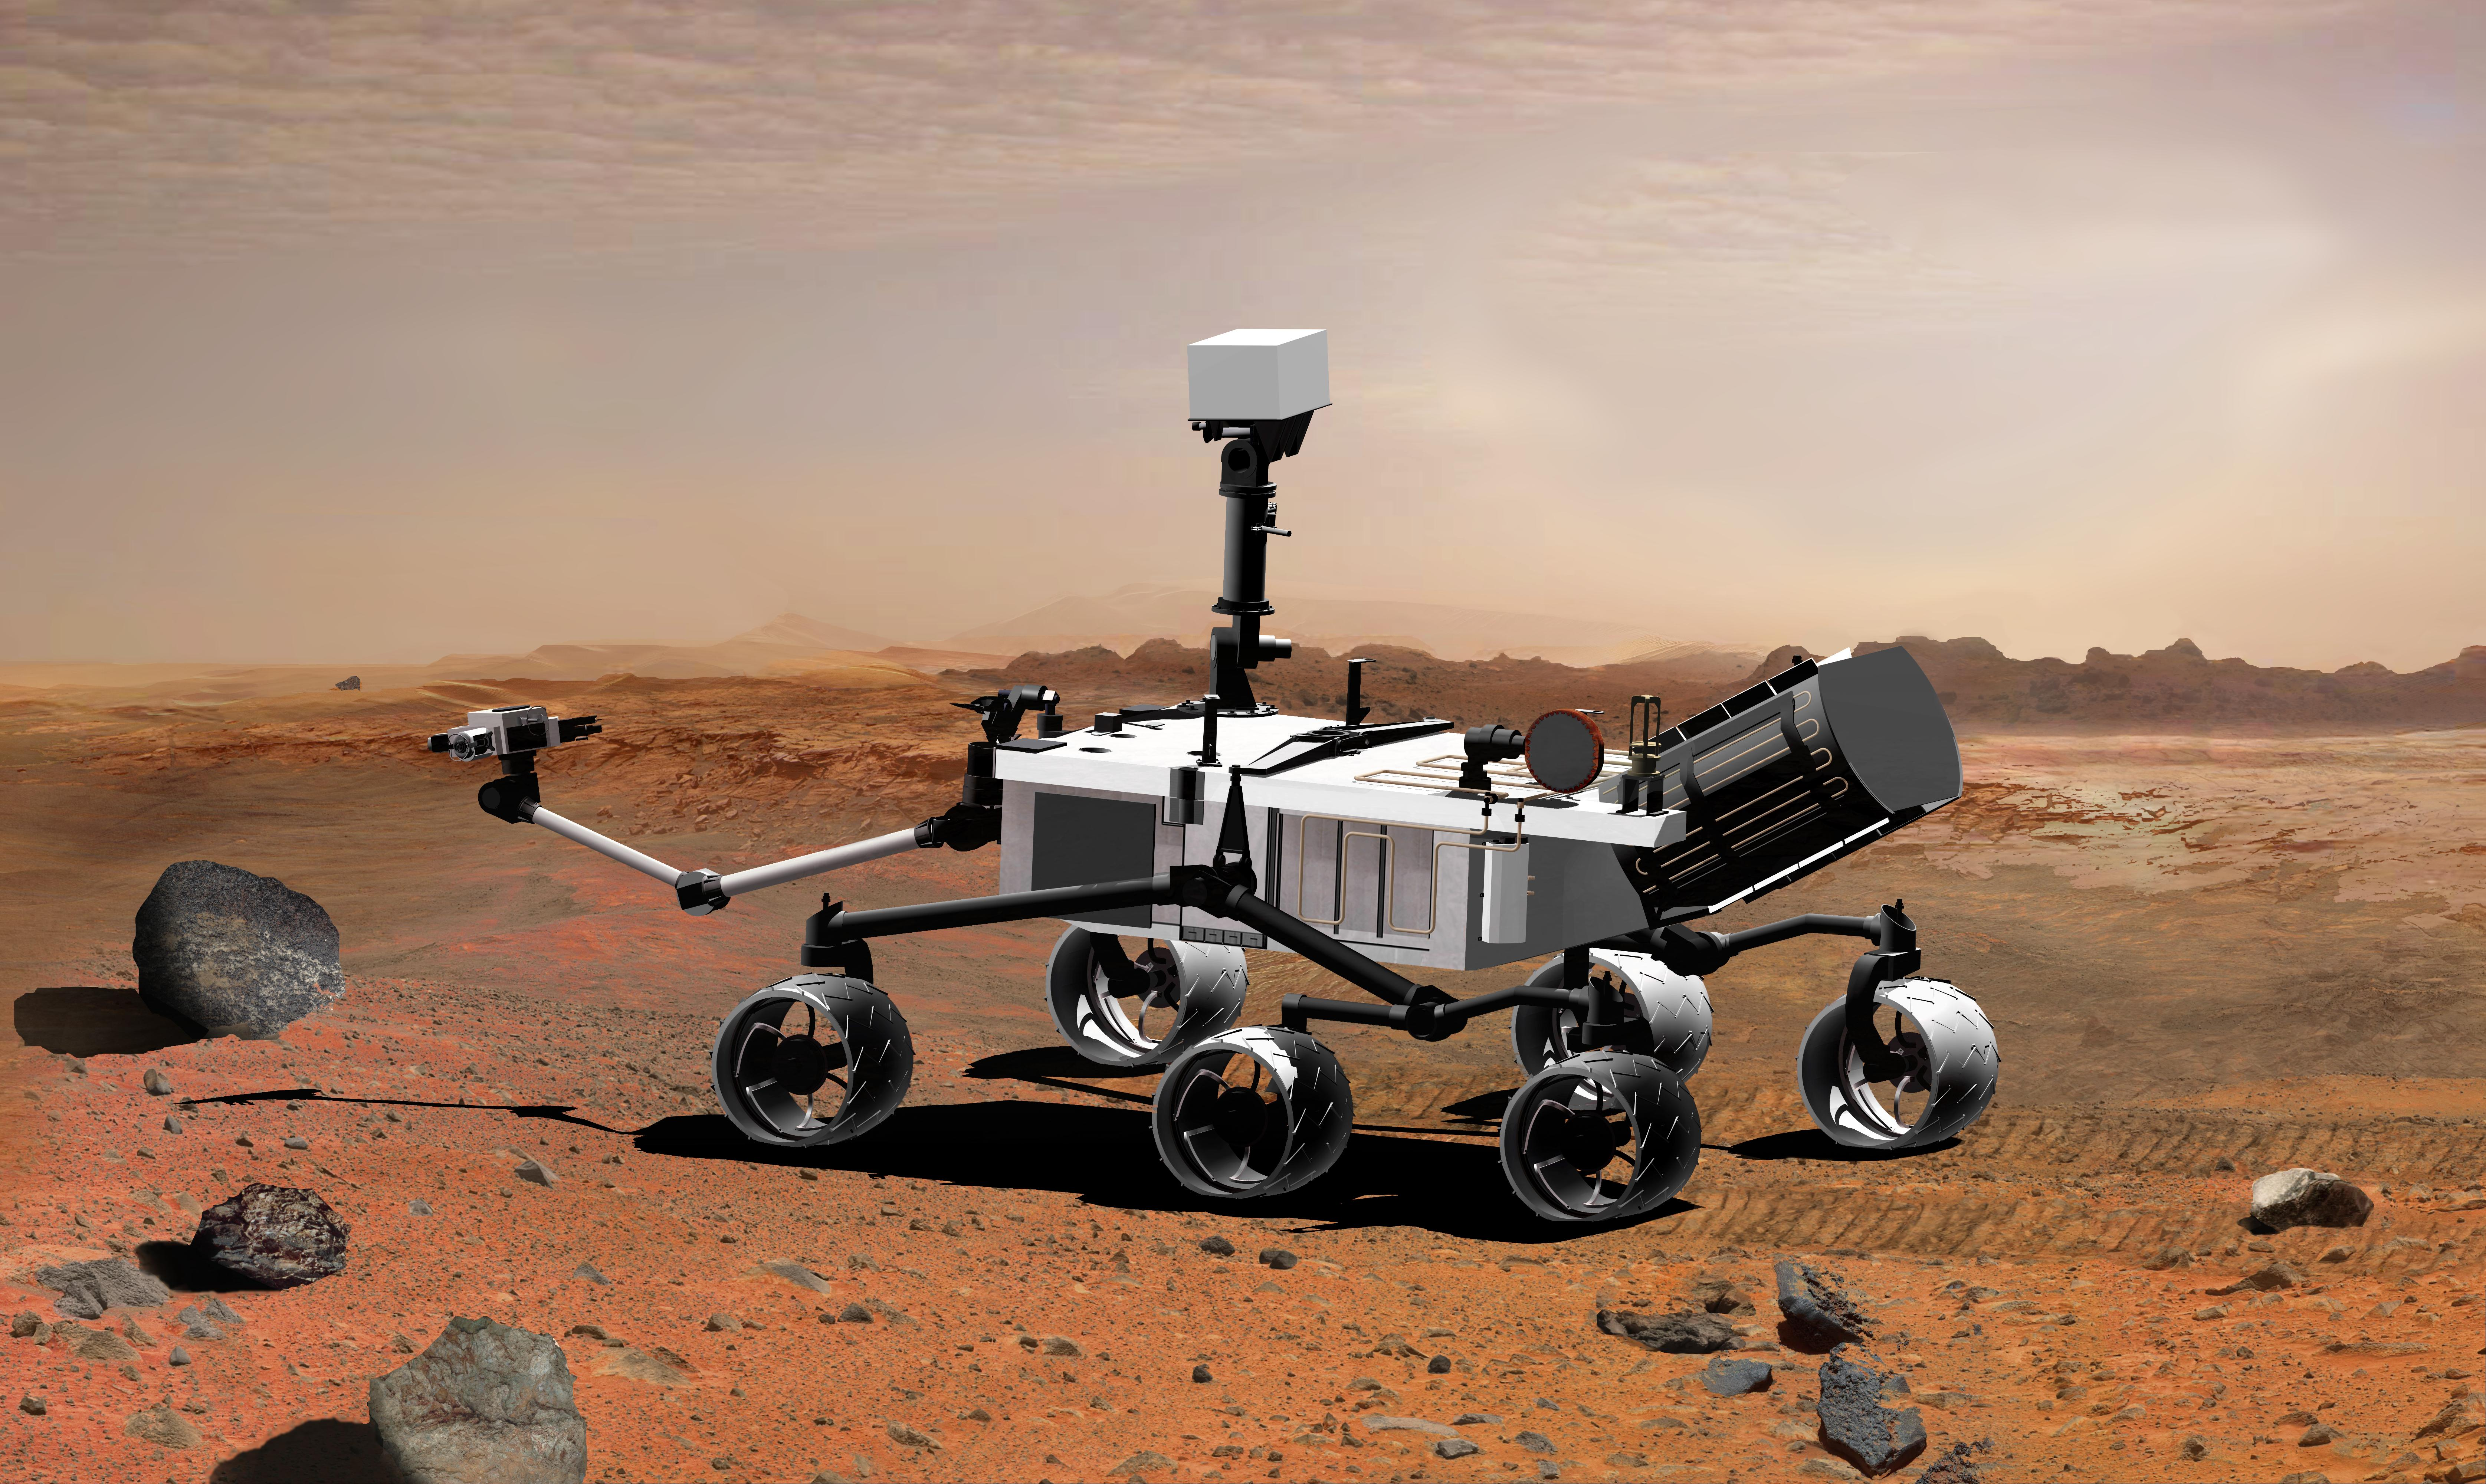 New Mars Missions to Focus on Search for Life